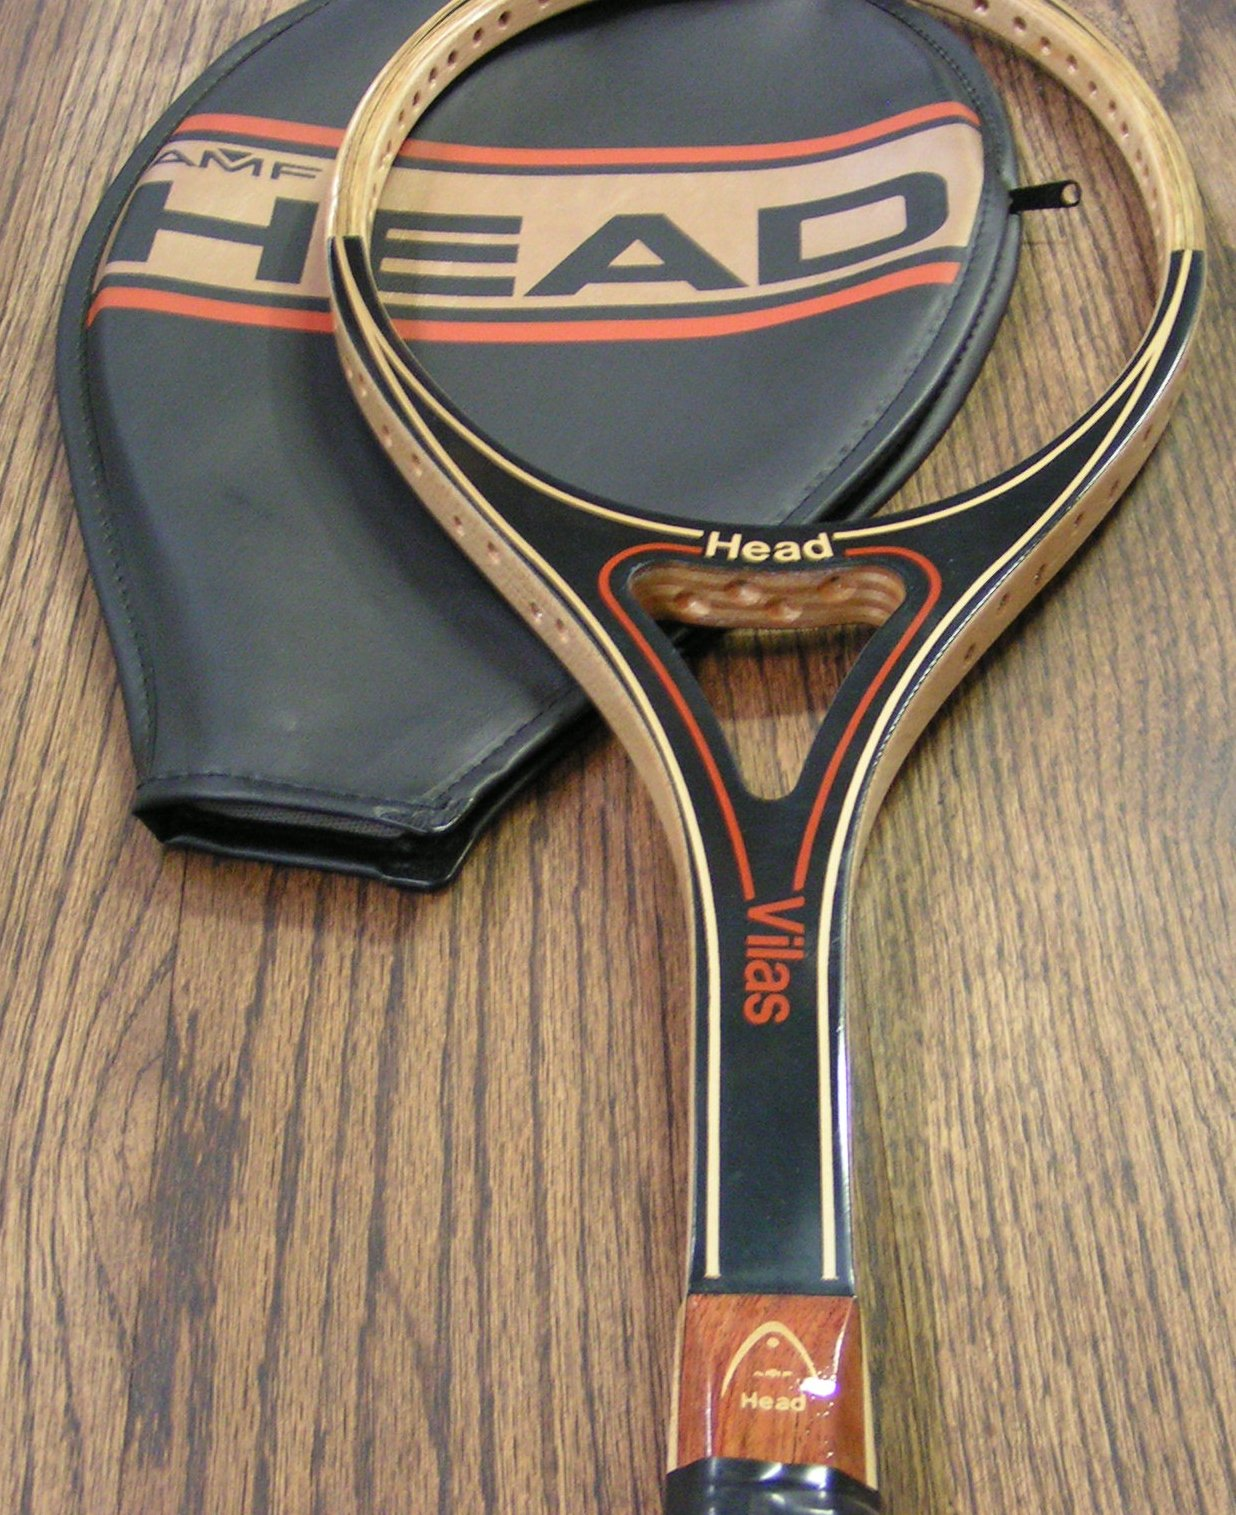 For Sale: Tennis rackets, books, antiques & collectibles